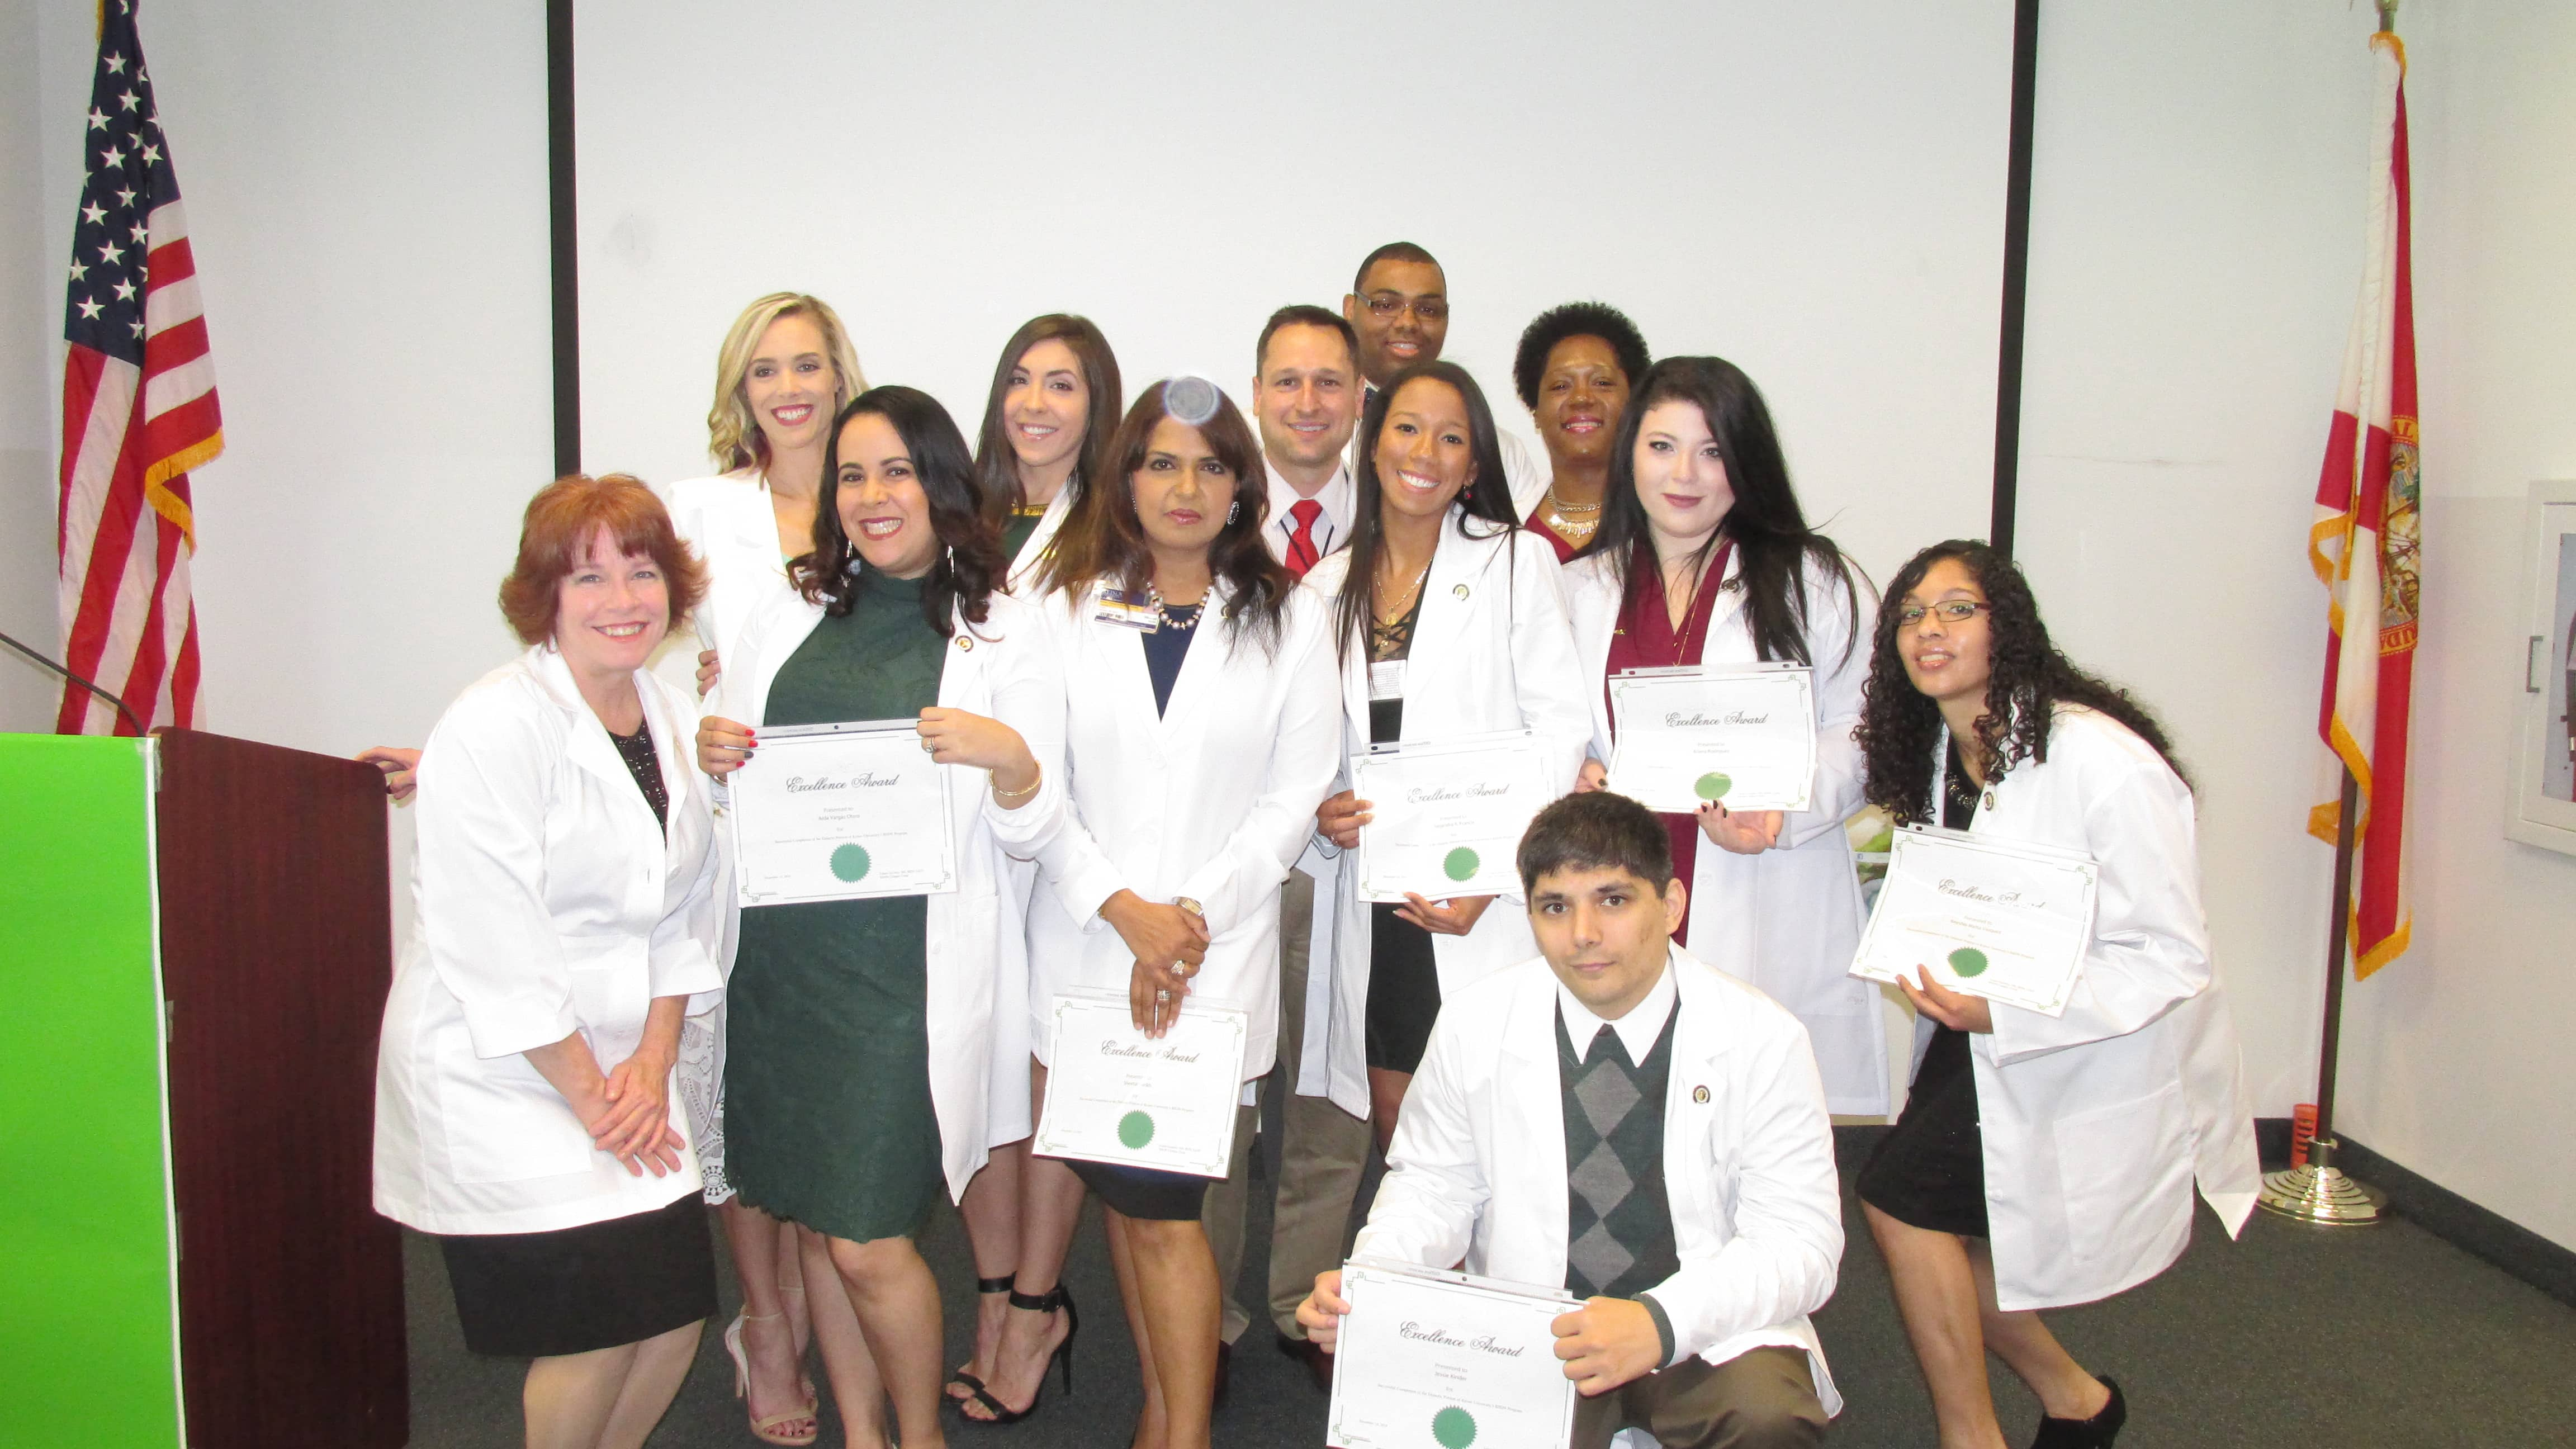 Lakeland Holds a Pinning Ceremony for the Dietetics & Nutrition Program